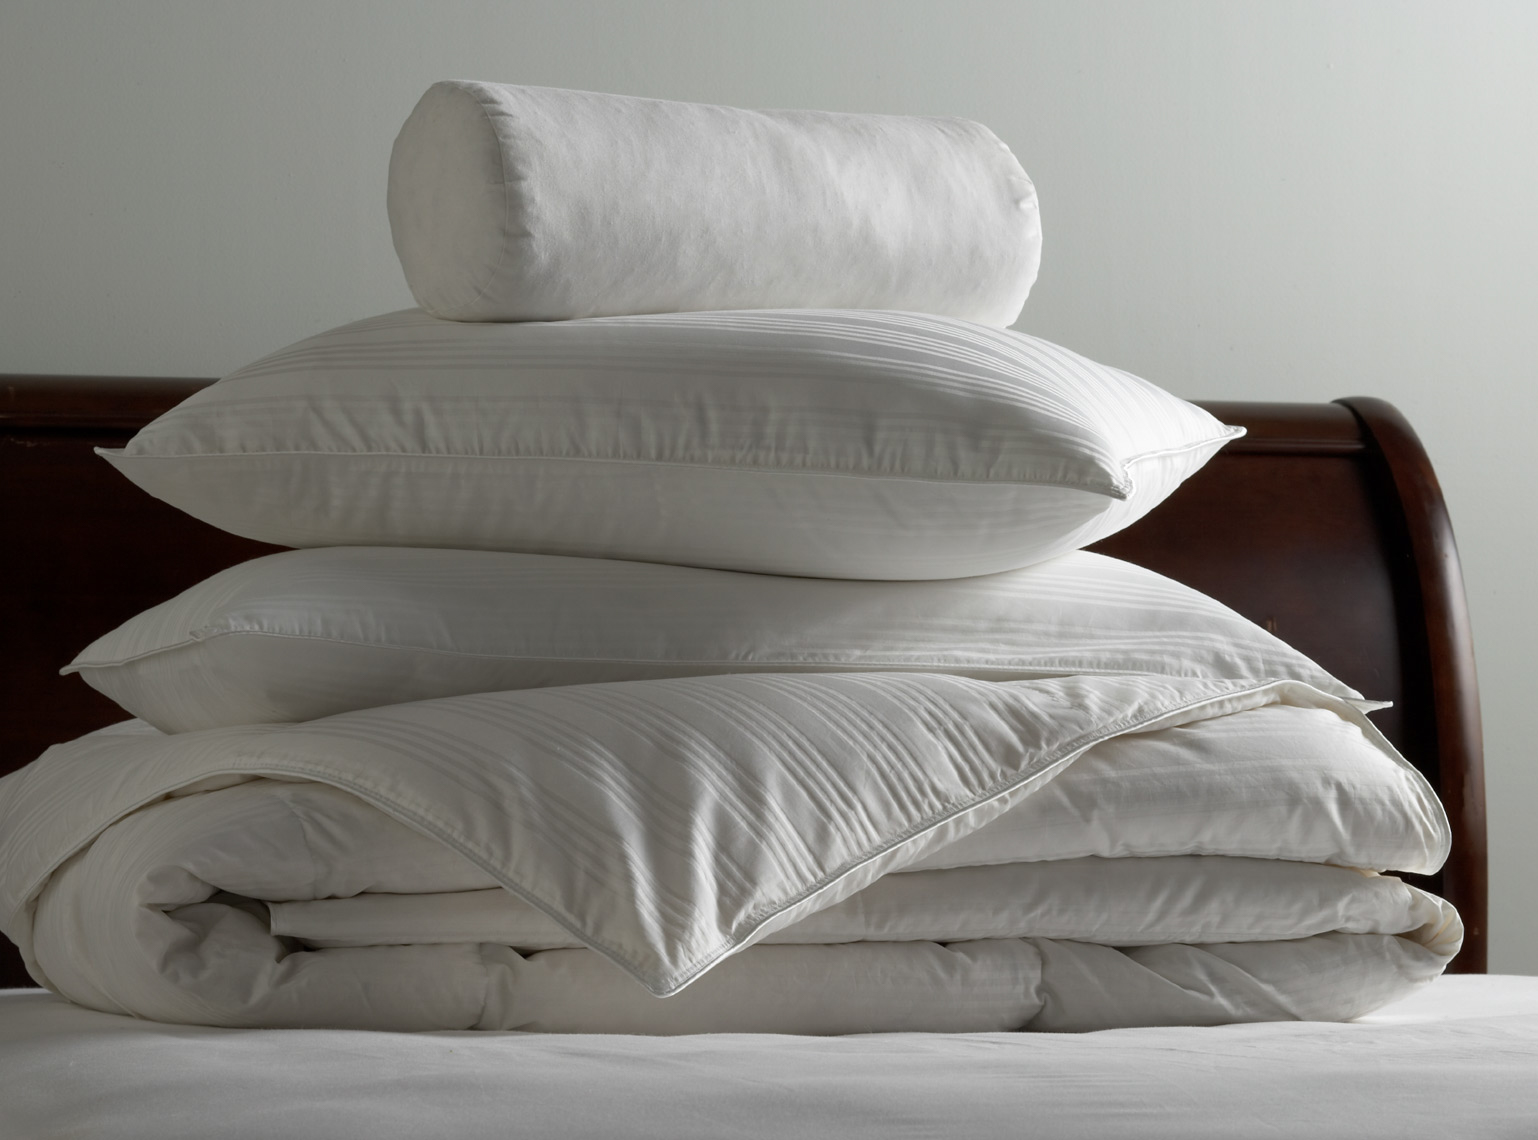 stack of white bedding on white bed with brown-stained wooden headboard San Francisco product photographer